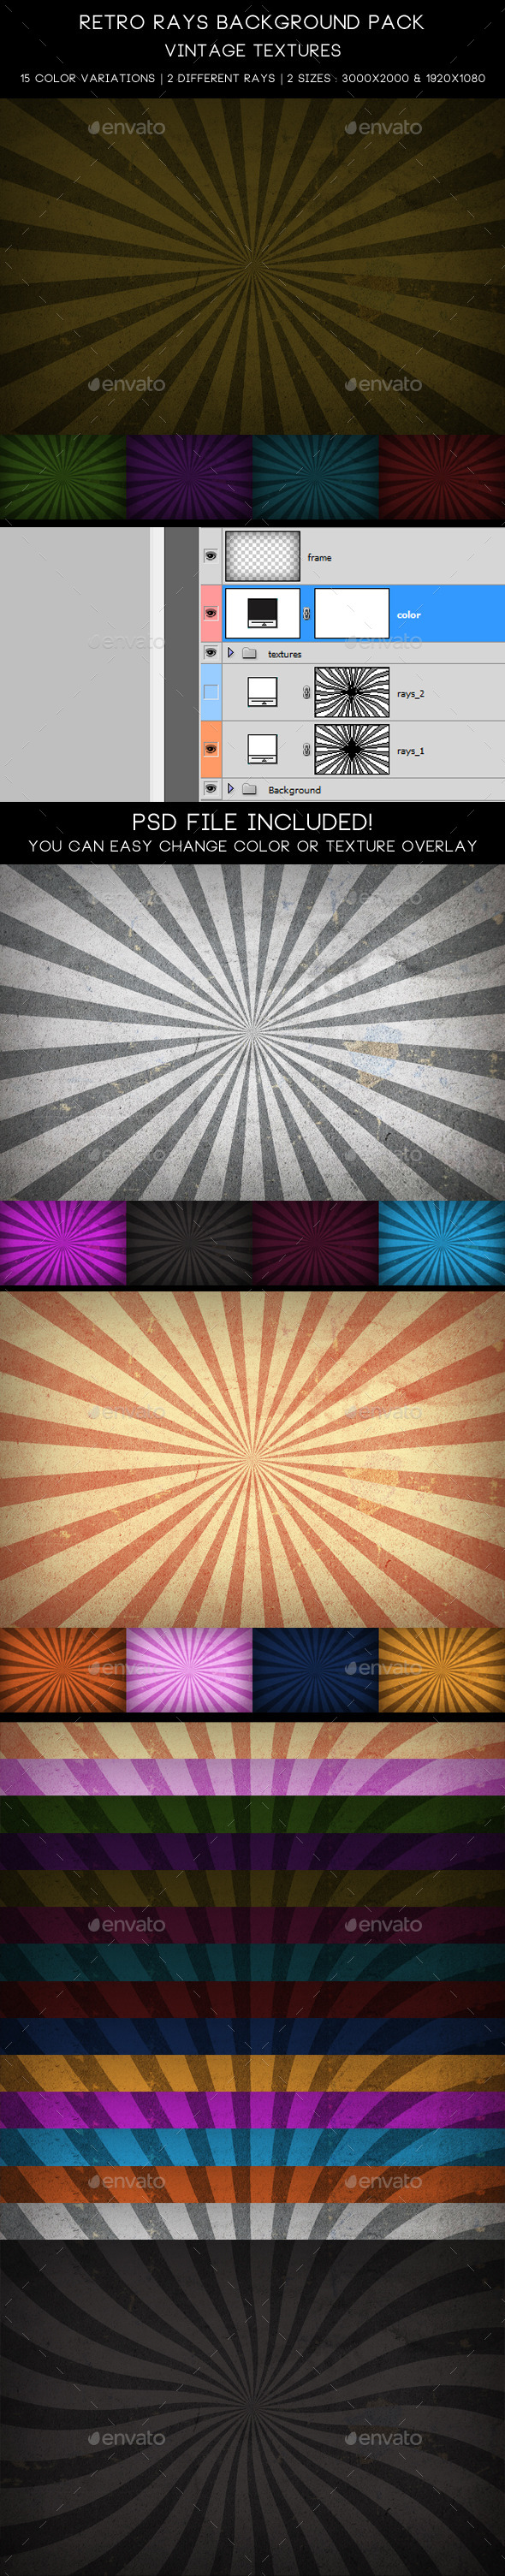 Retro Rays Background Pack / Vintage Textures